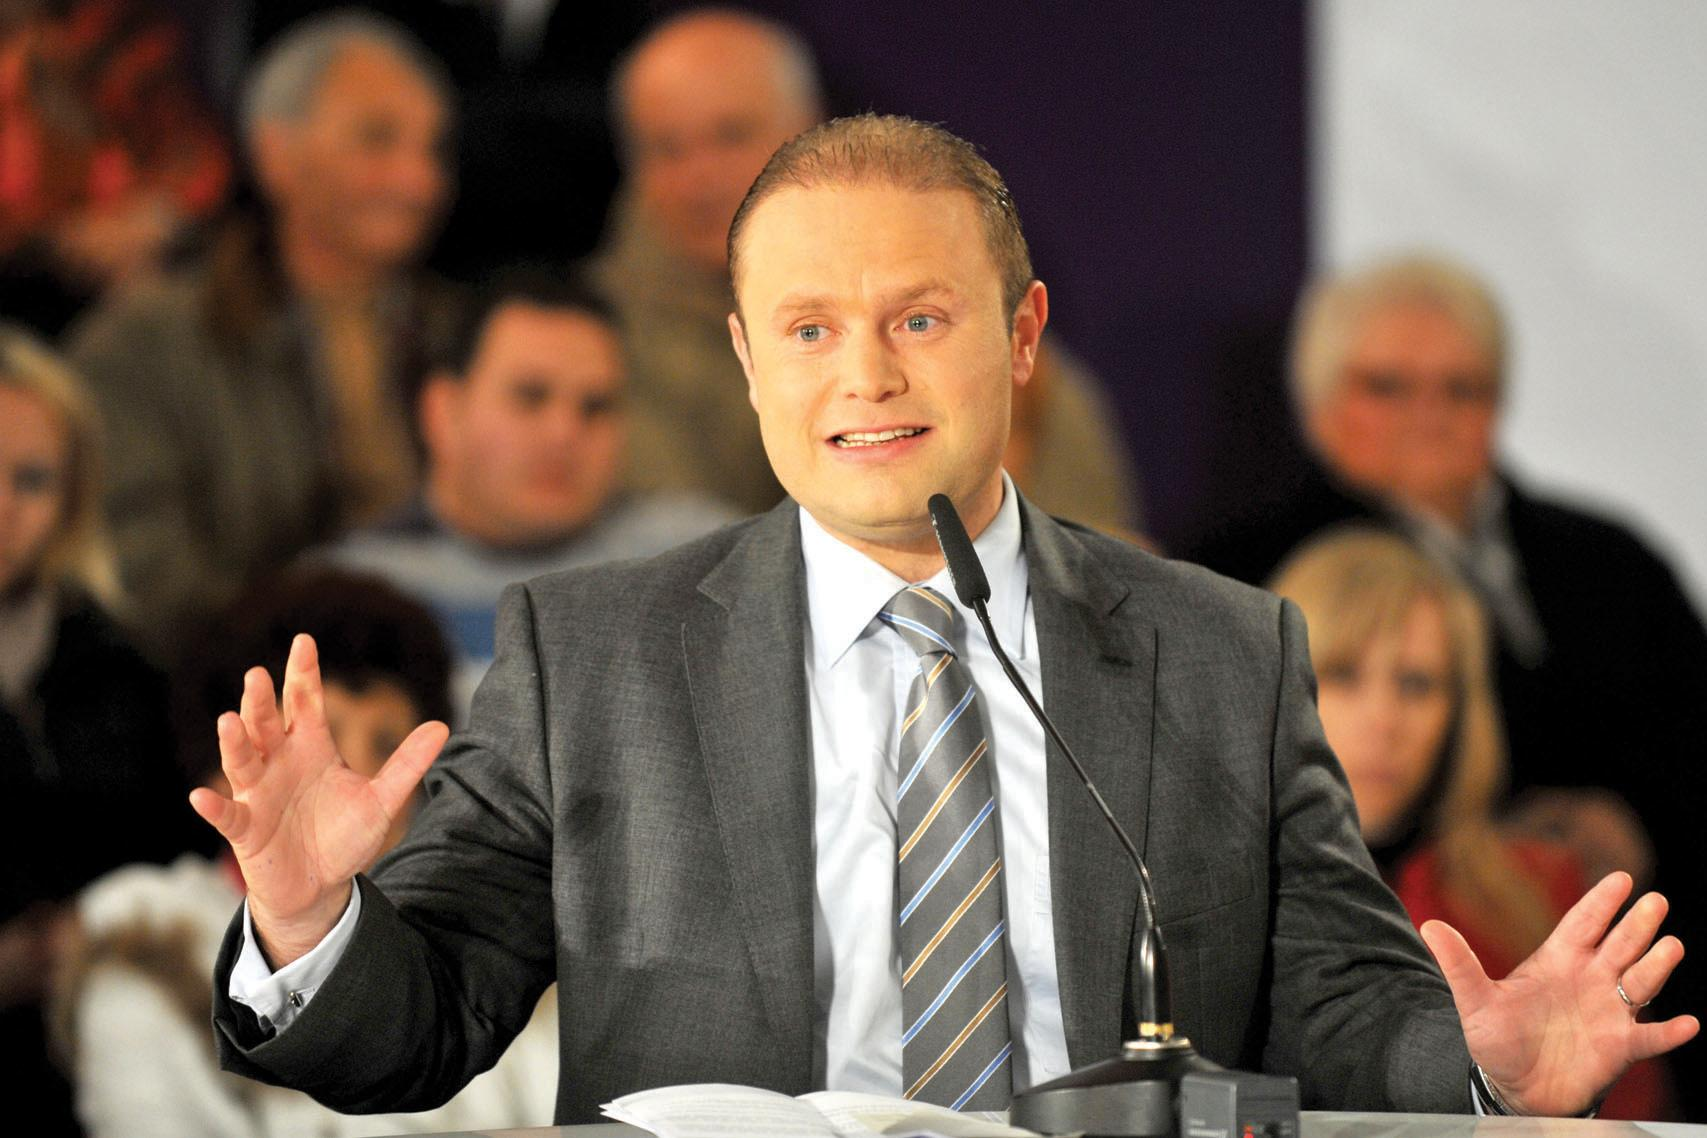 Joseph Muscat in 2014, one year into his leadership.